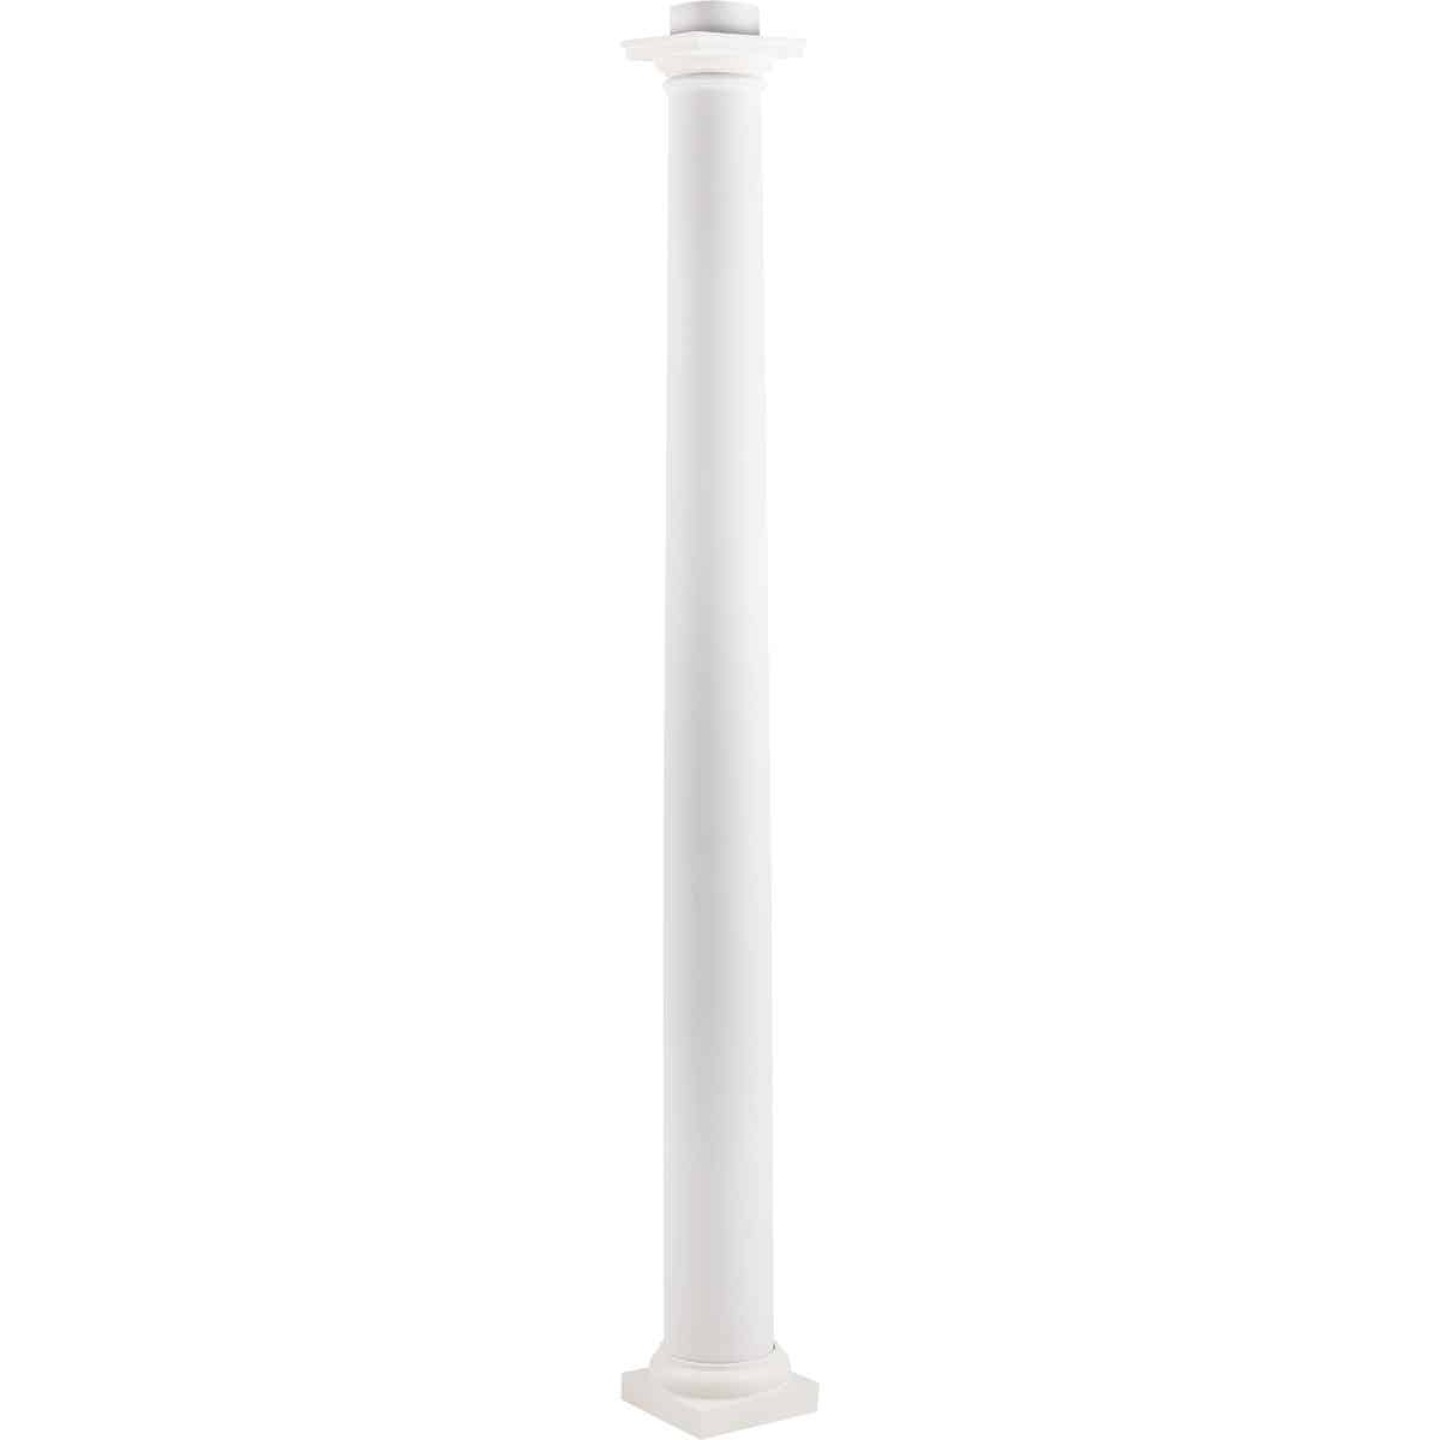 Crown Column 8 In. x 8 Ft. Unfinished Round Fiberglass Column Image 5